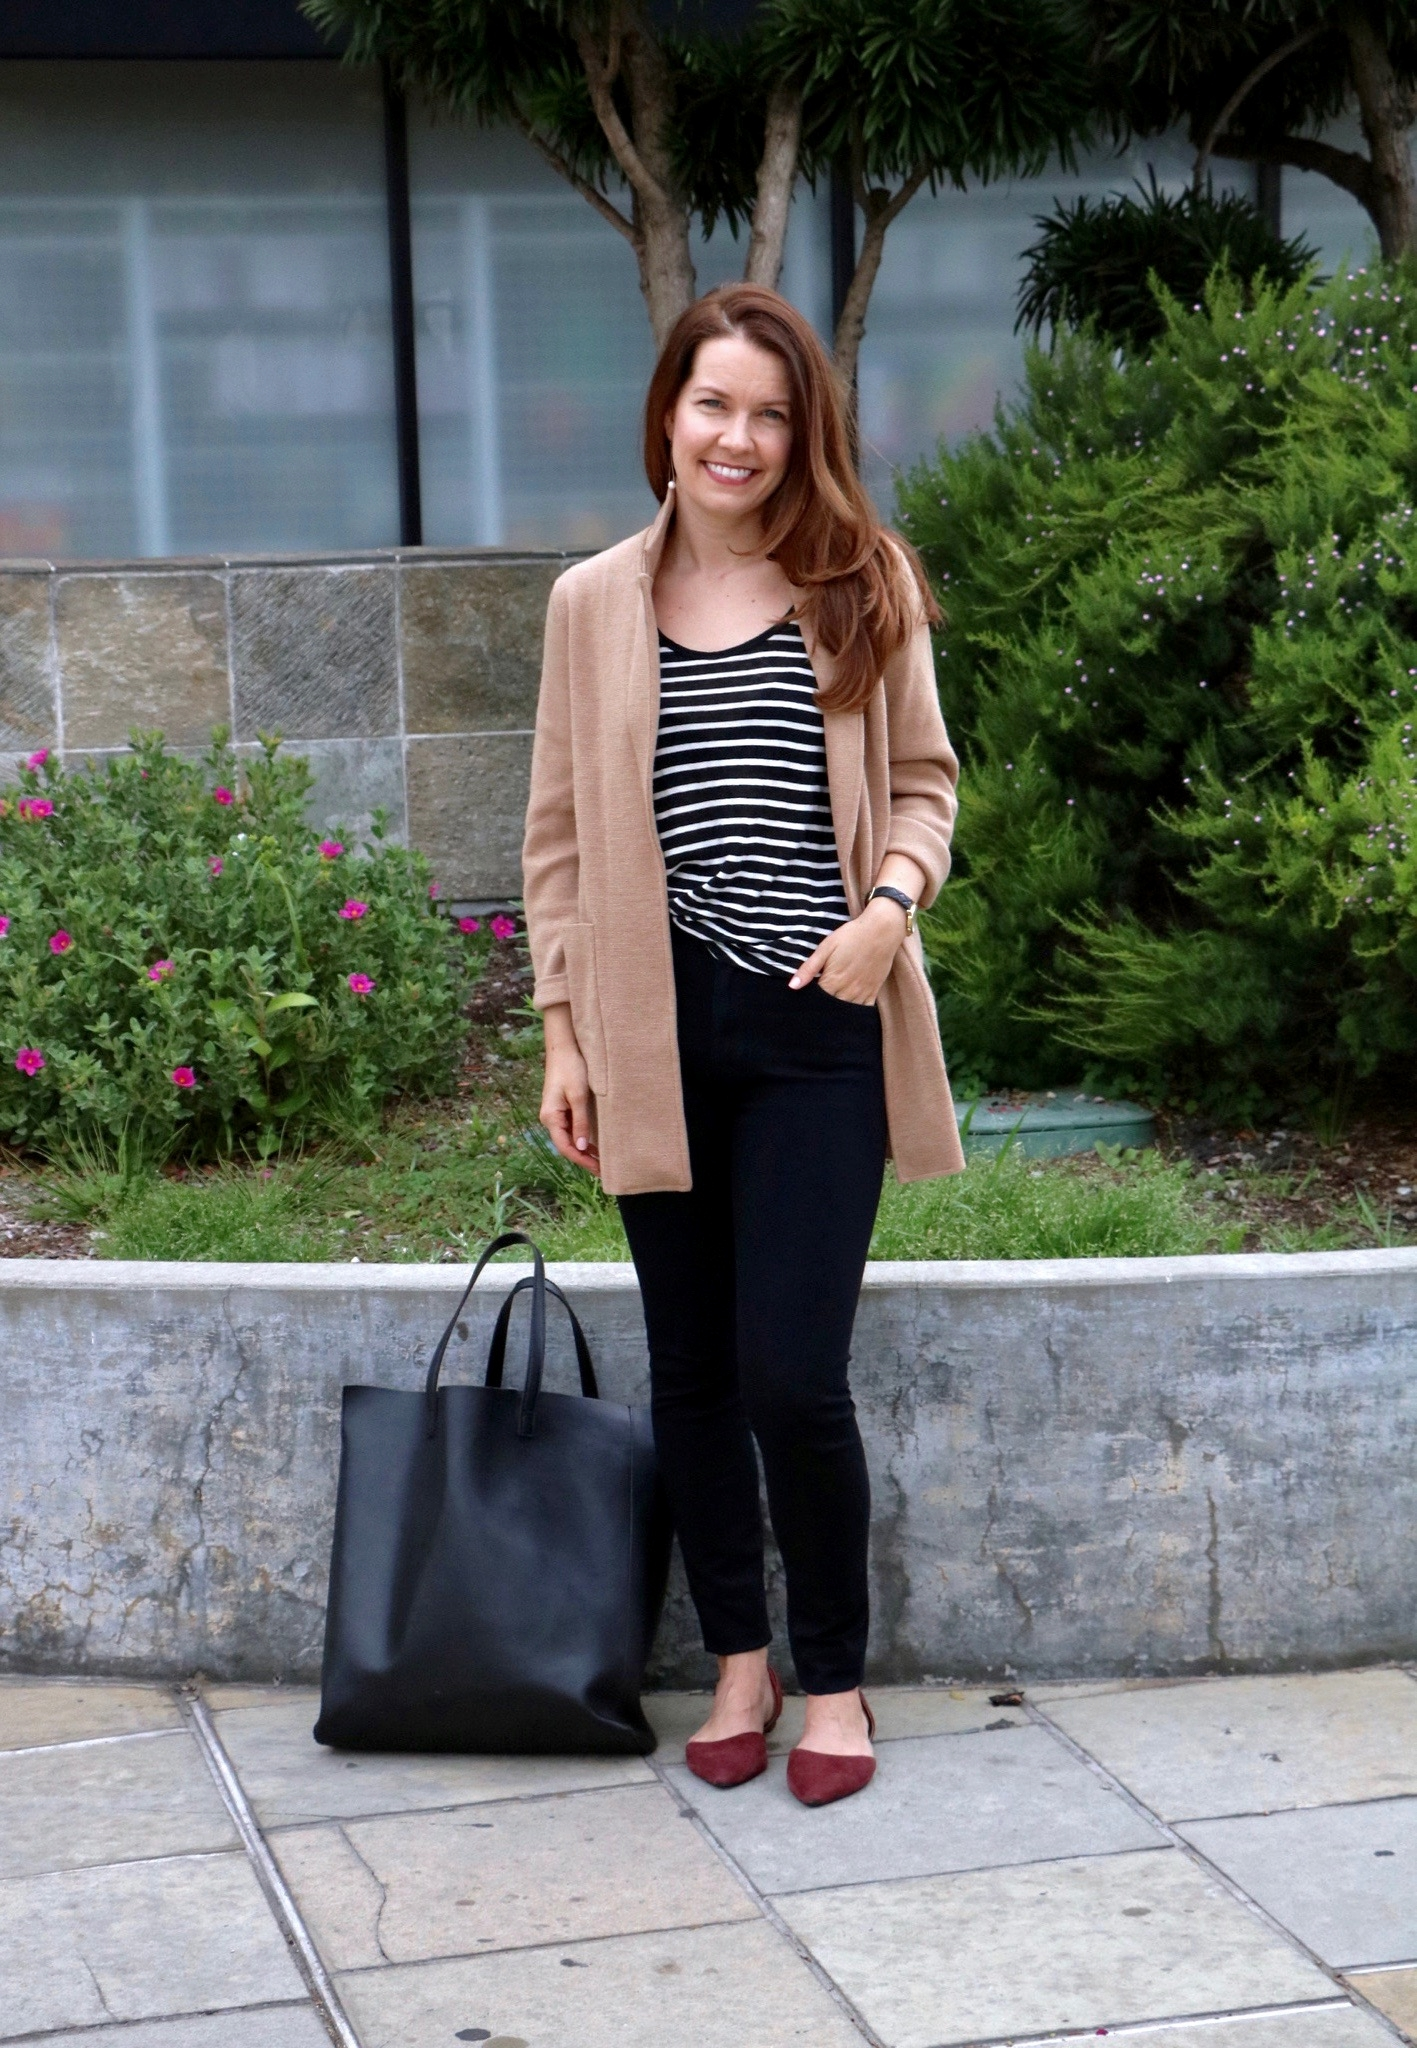 Outfit Details:  J.Crew Sweater Blazer $138,  AG Farah High-rise Jeans  $178, Black and White Linen Tee ( Similar  Caslon $25), Older BR Wine Flats (Similar above), Earrings Jessica Thompson Designs Triangle Pear $38